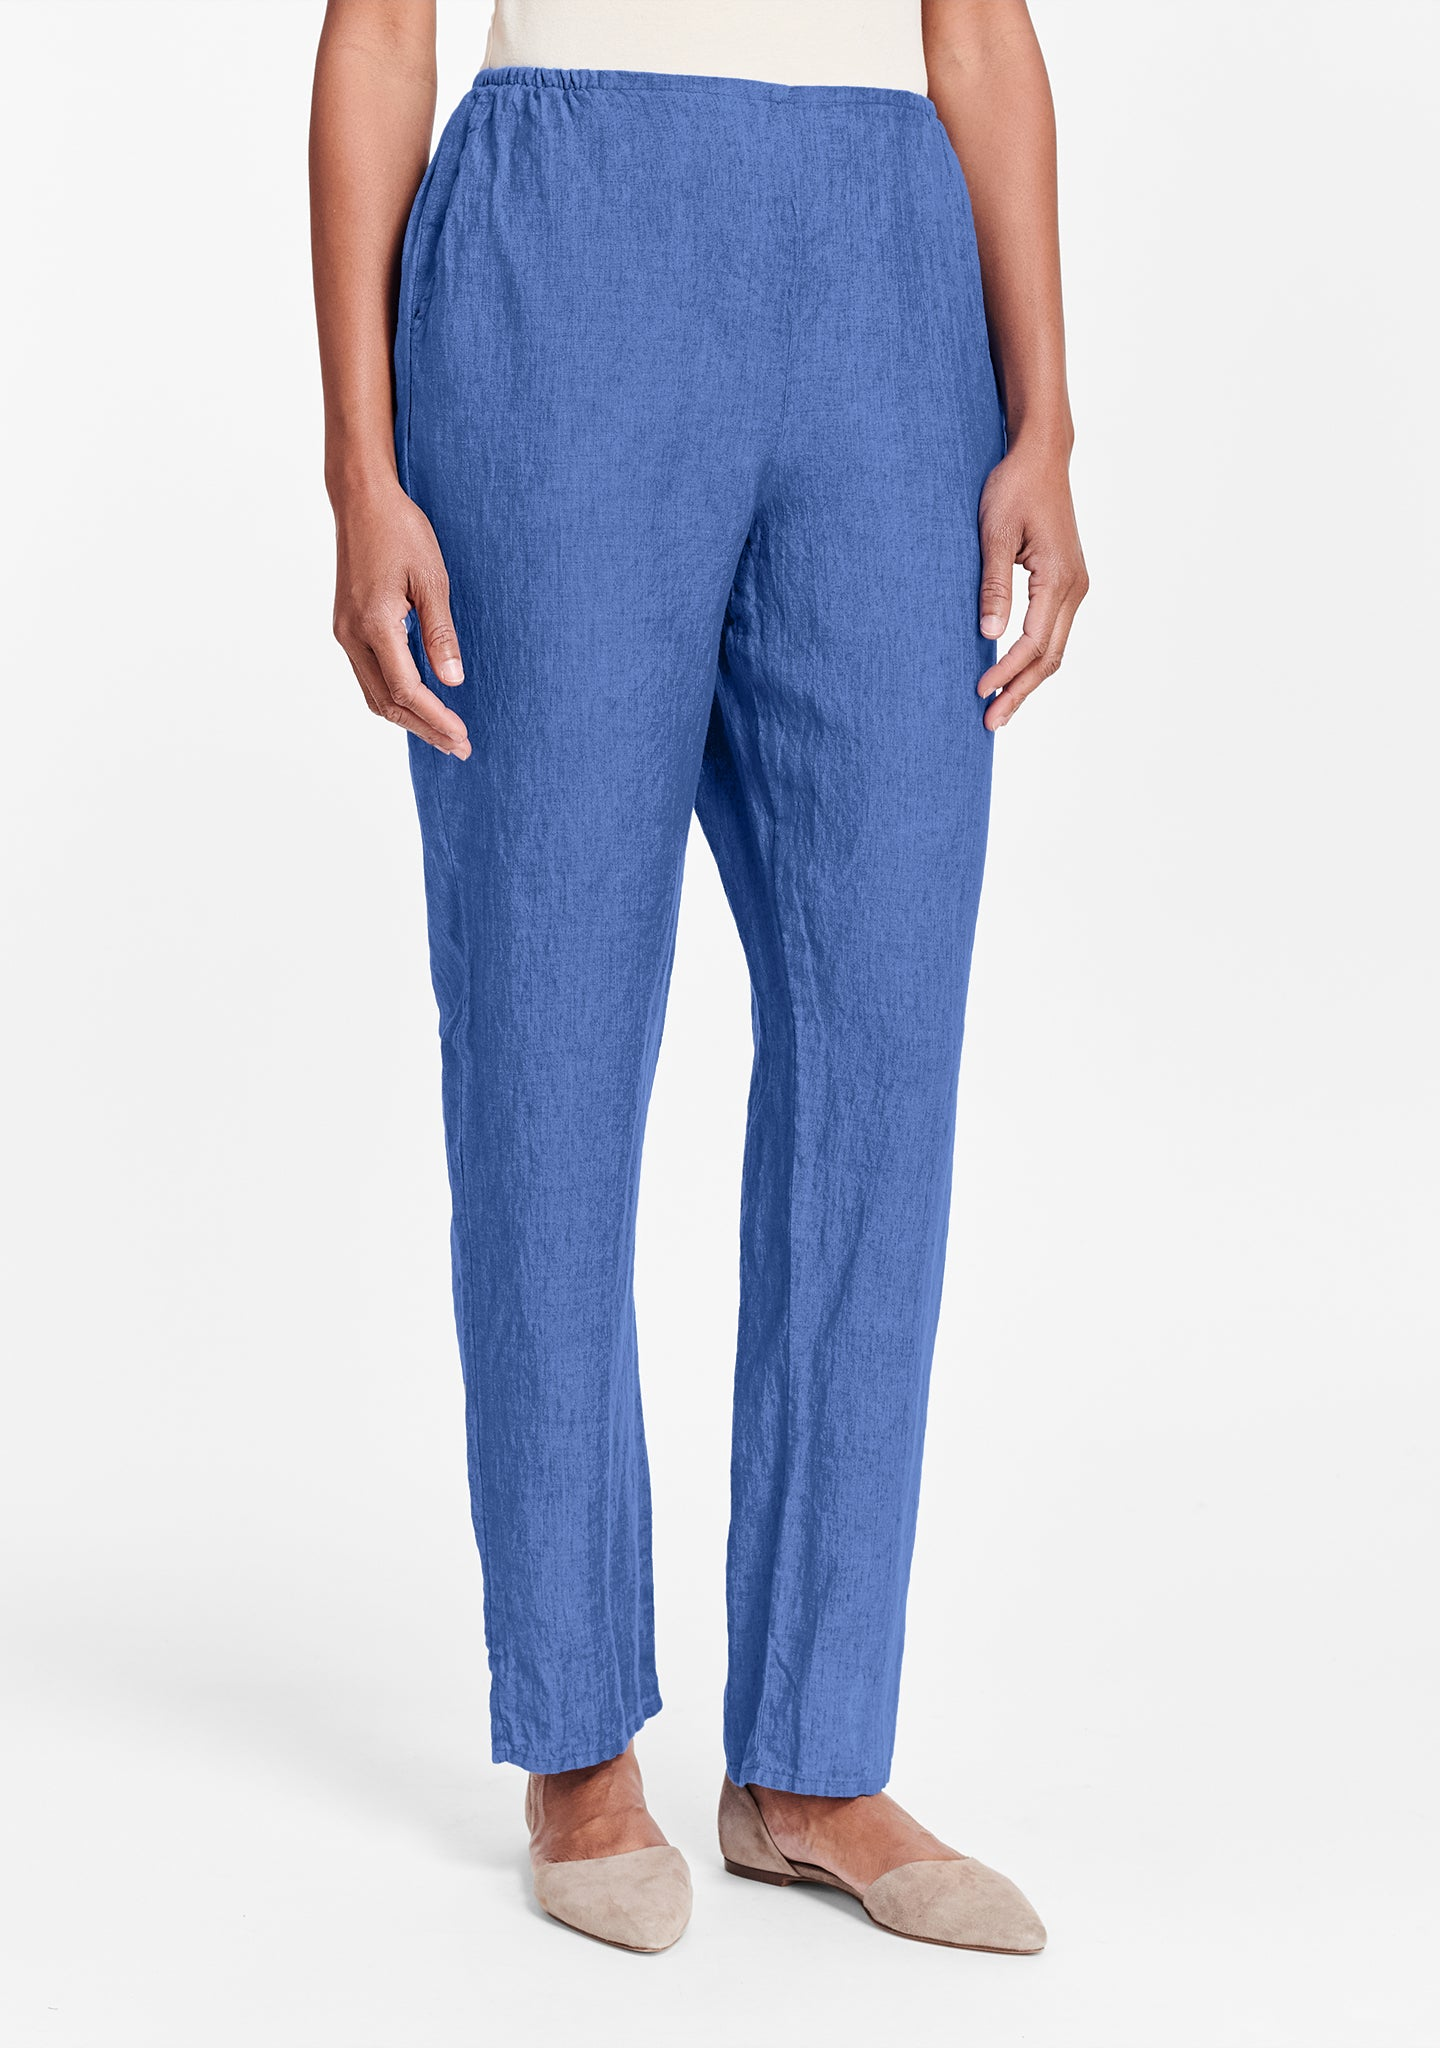 pocketed social pant blue